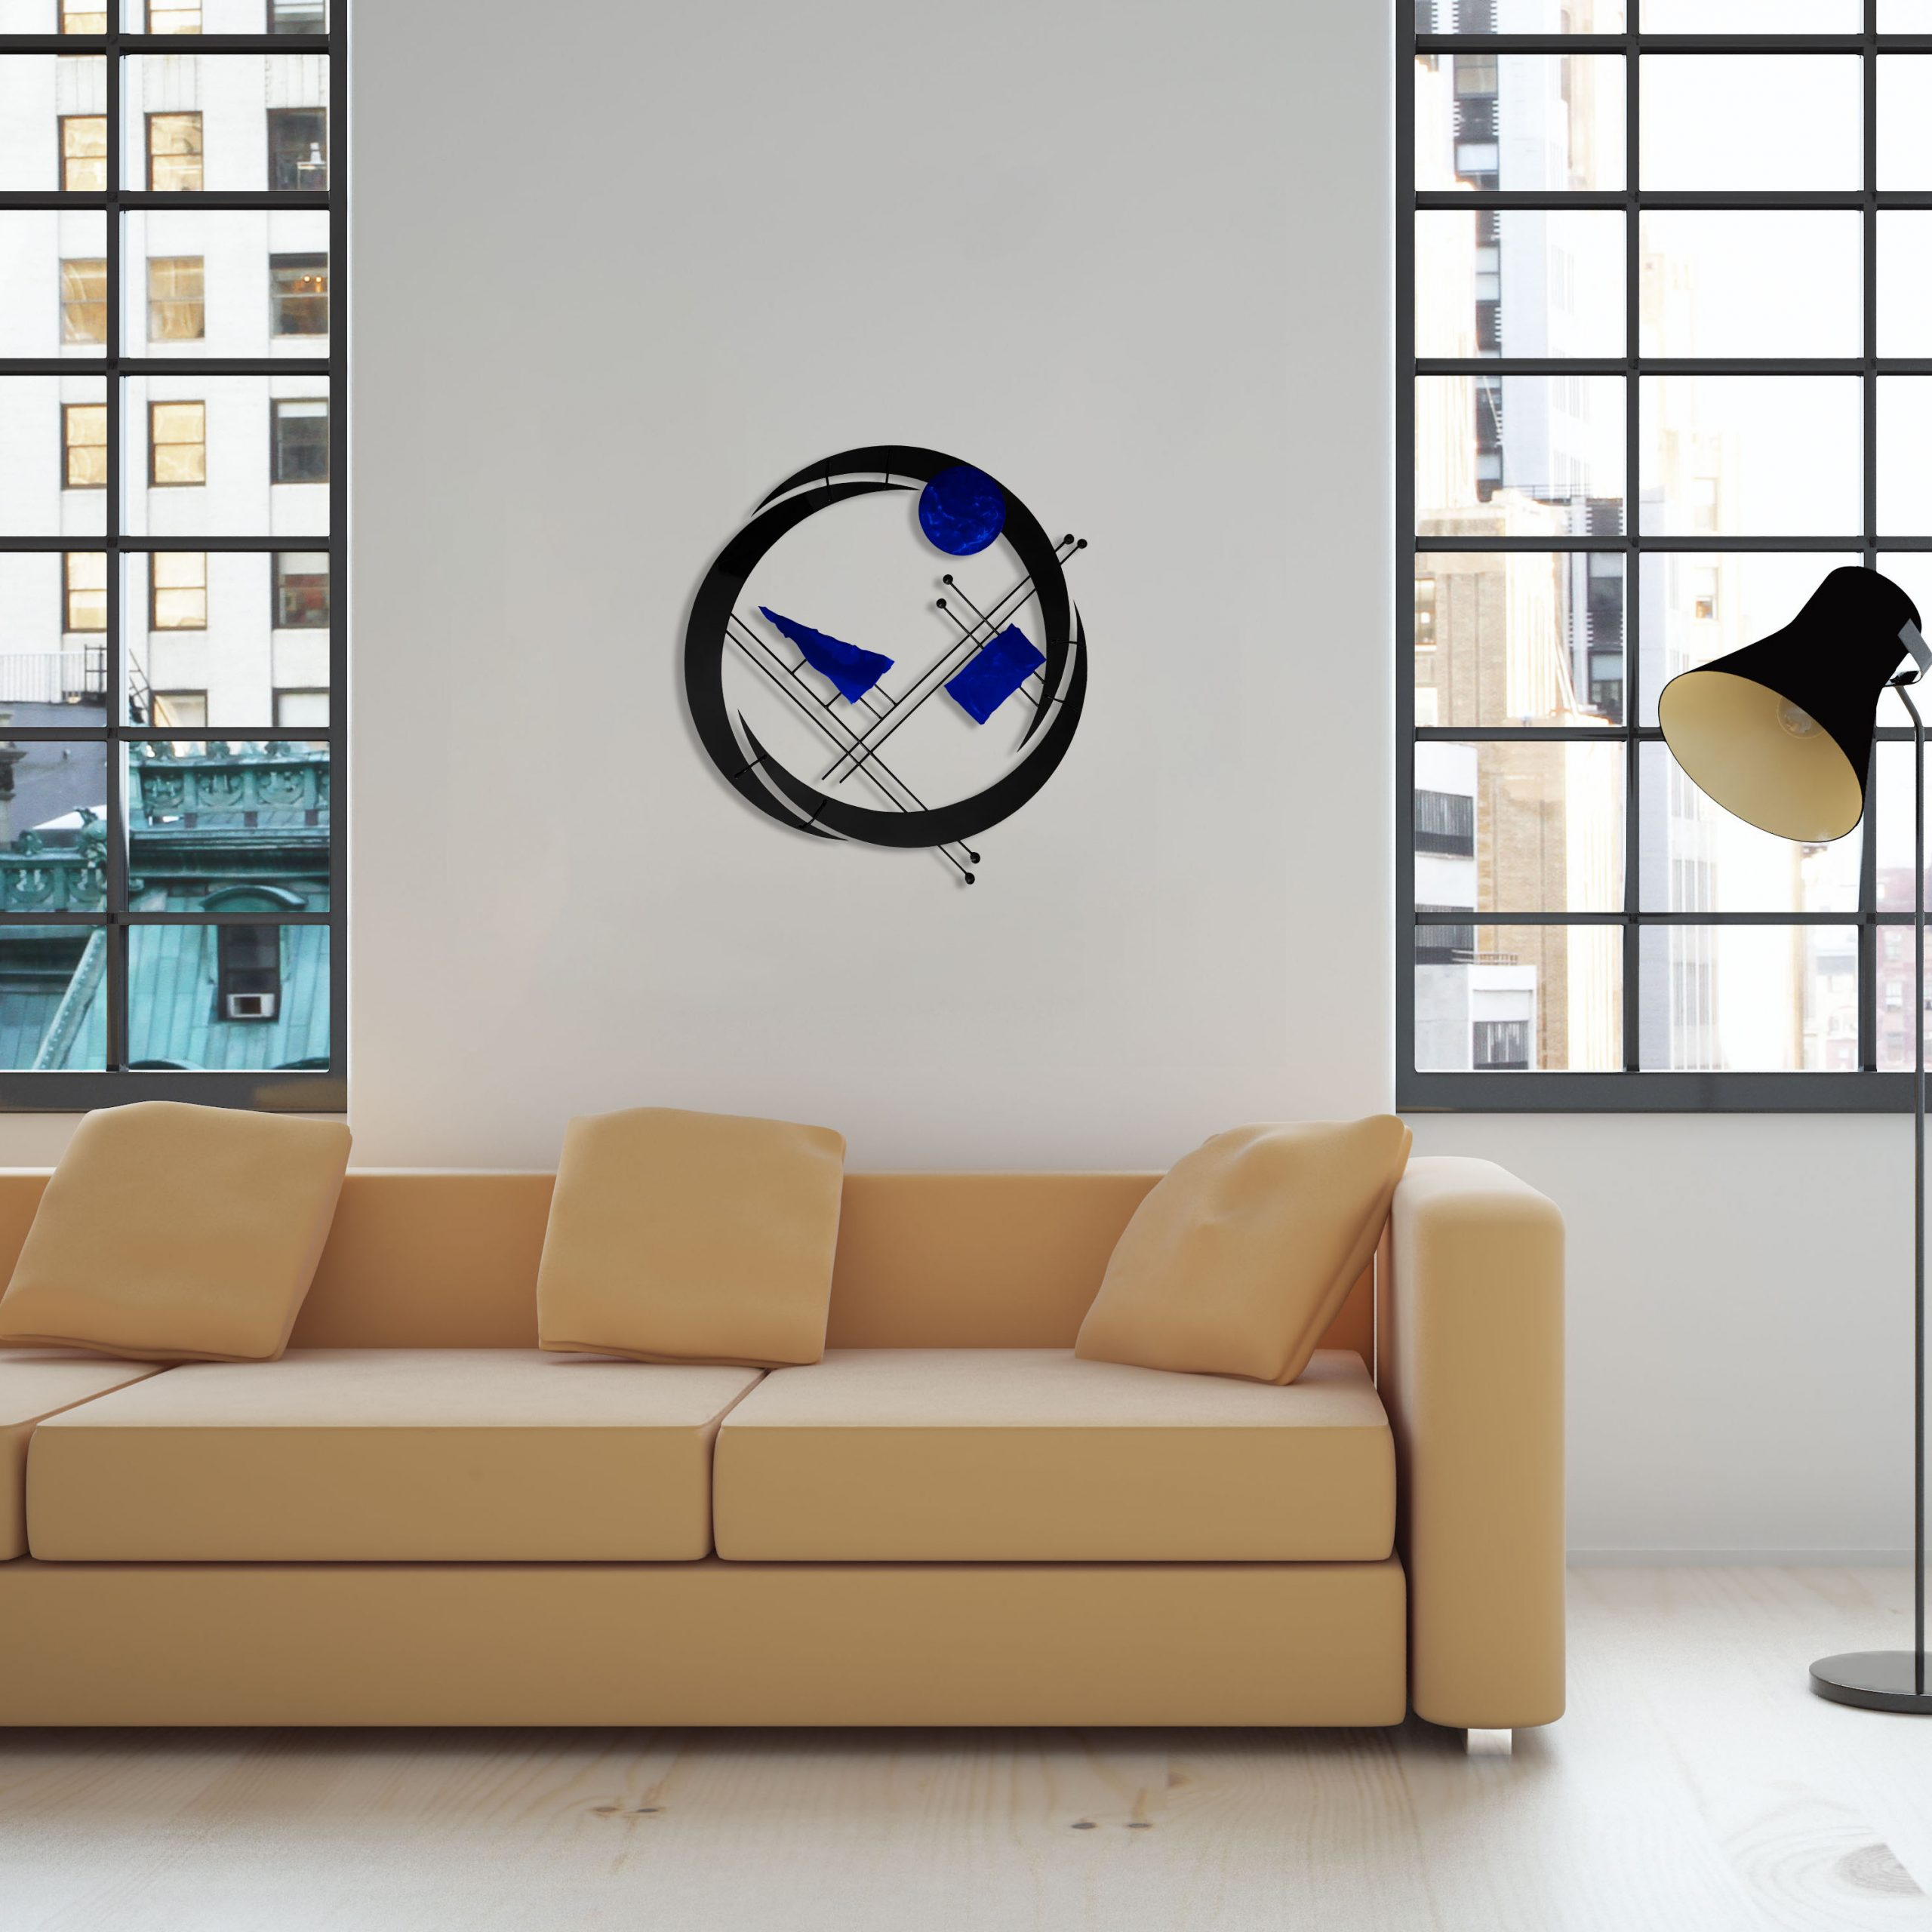 blue-Swirl-in-living-room-scaled